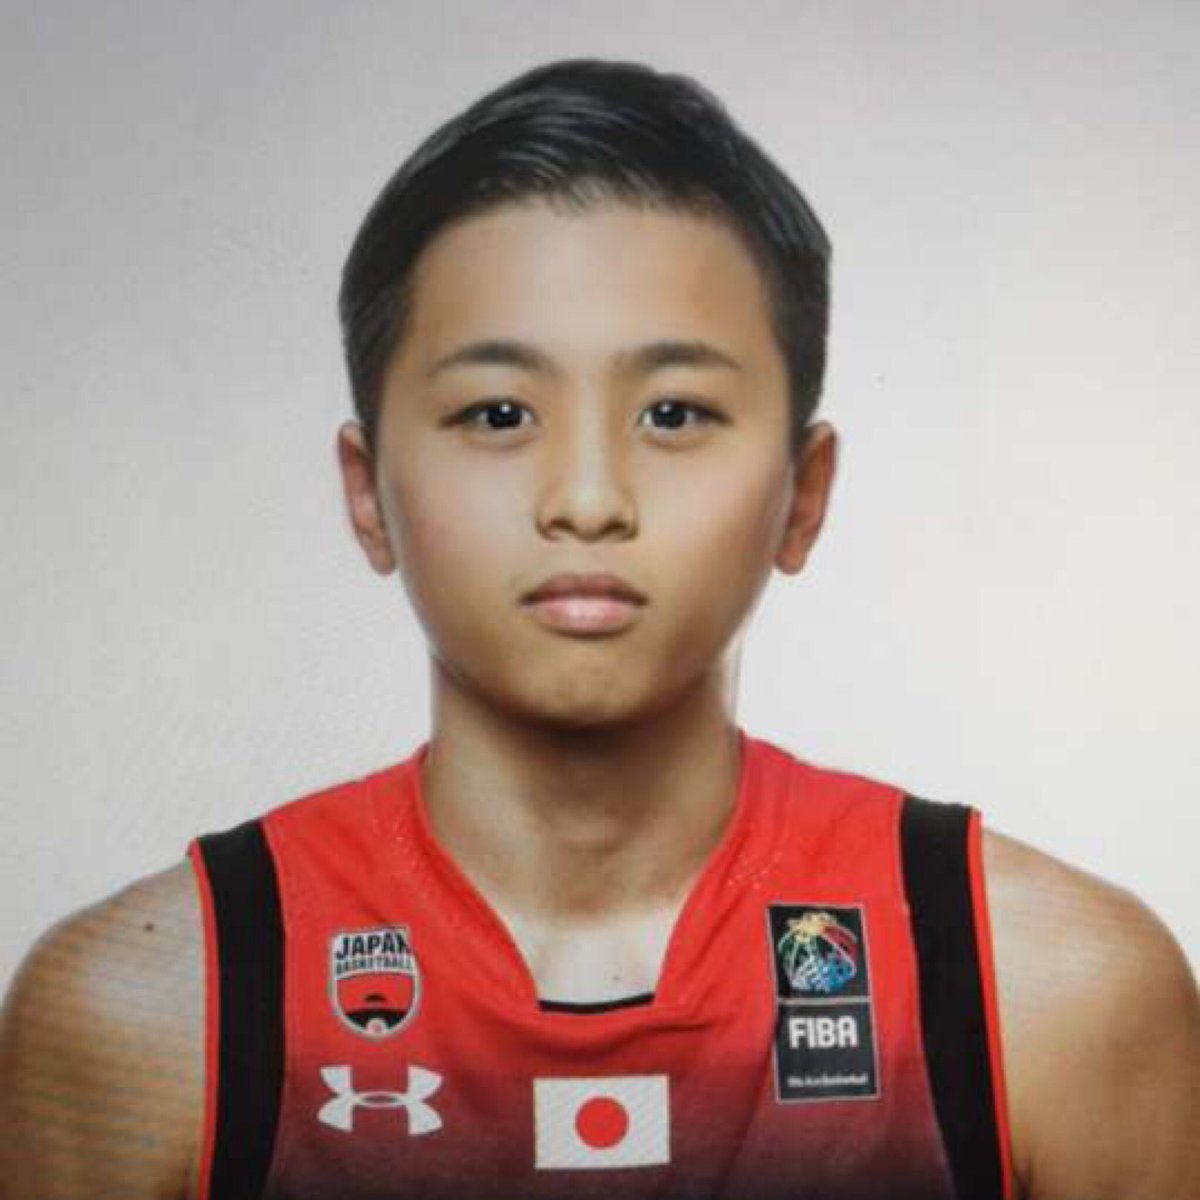 #FIBAAsiaCup players baby filtered! Who's your favorite ? @JAPANBASKETBALL @officialSBPinc @FLBB_OFFICIAL   #babyfilter <br>http://pic.twitter.com/ll9xGbJyVt